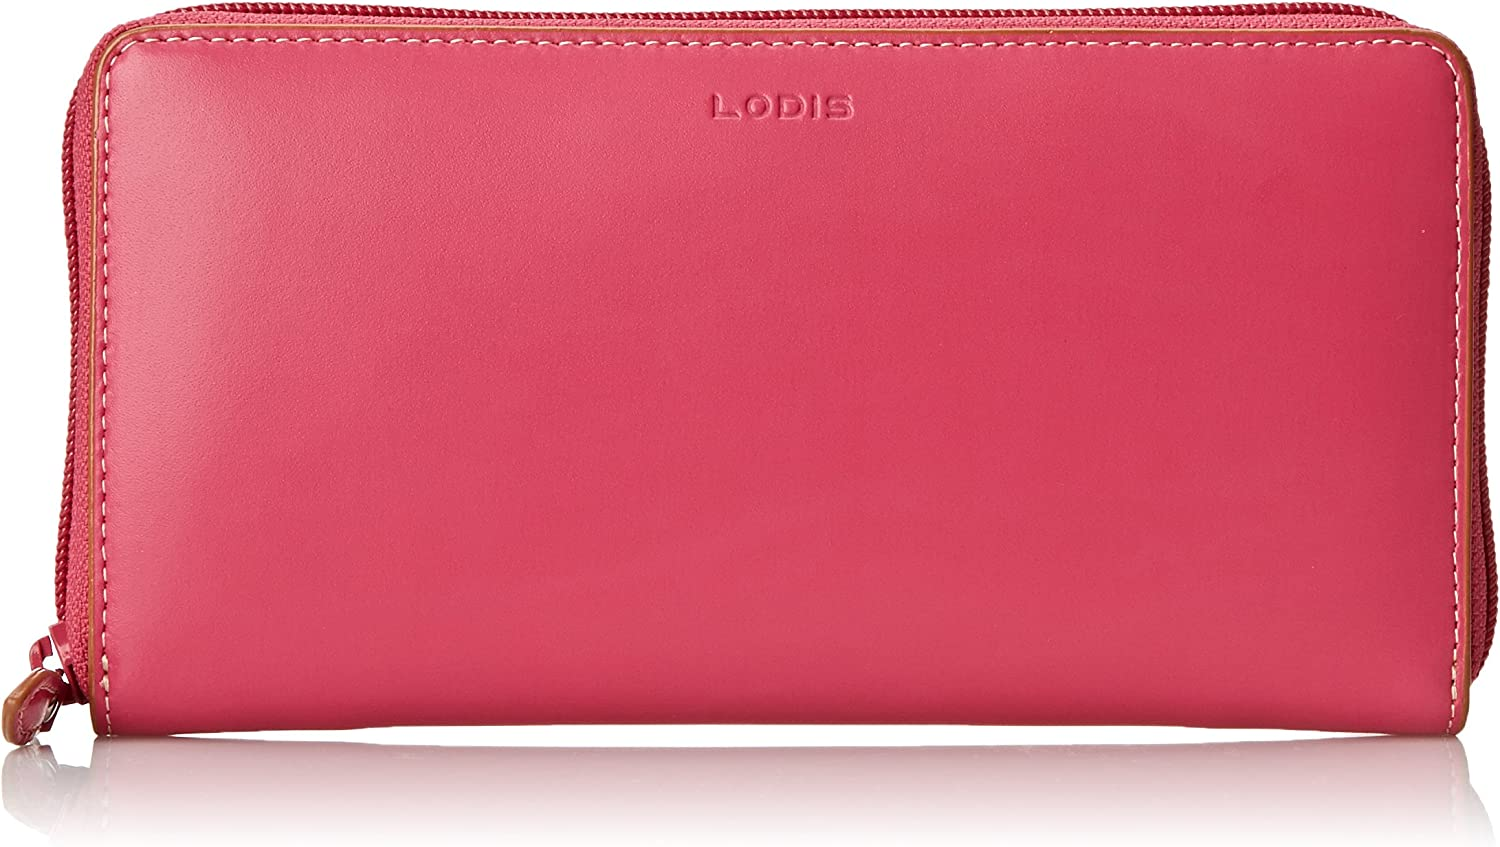 Lodis Audrey Iris Zip Around Wallet